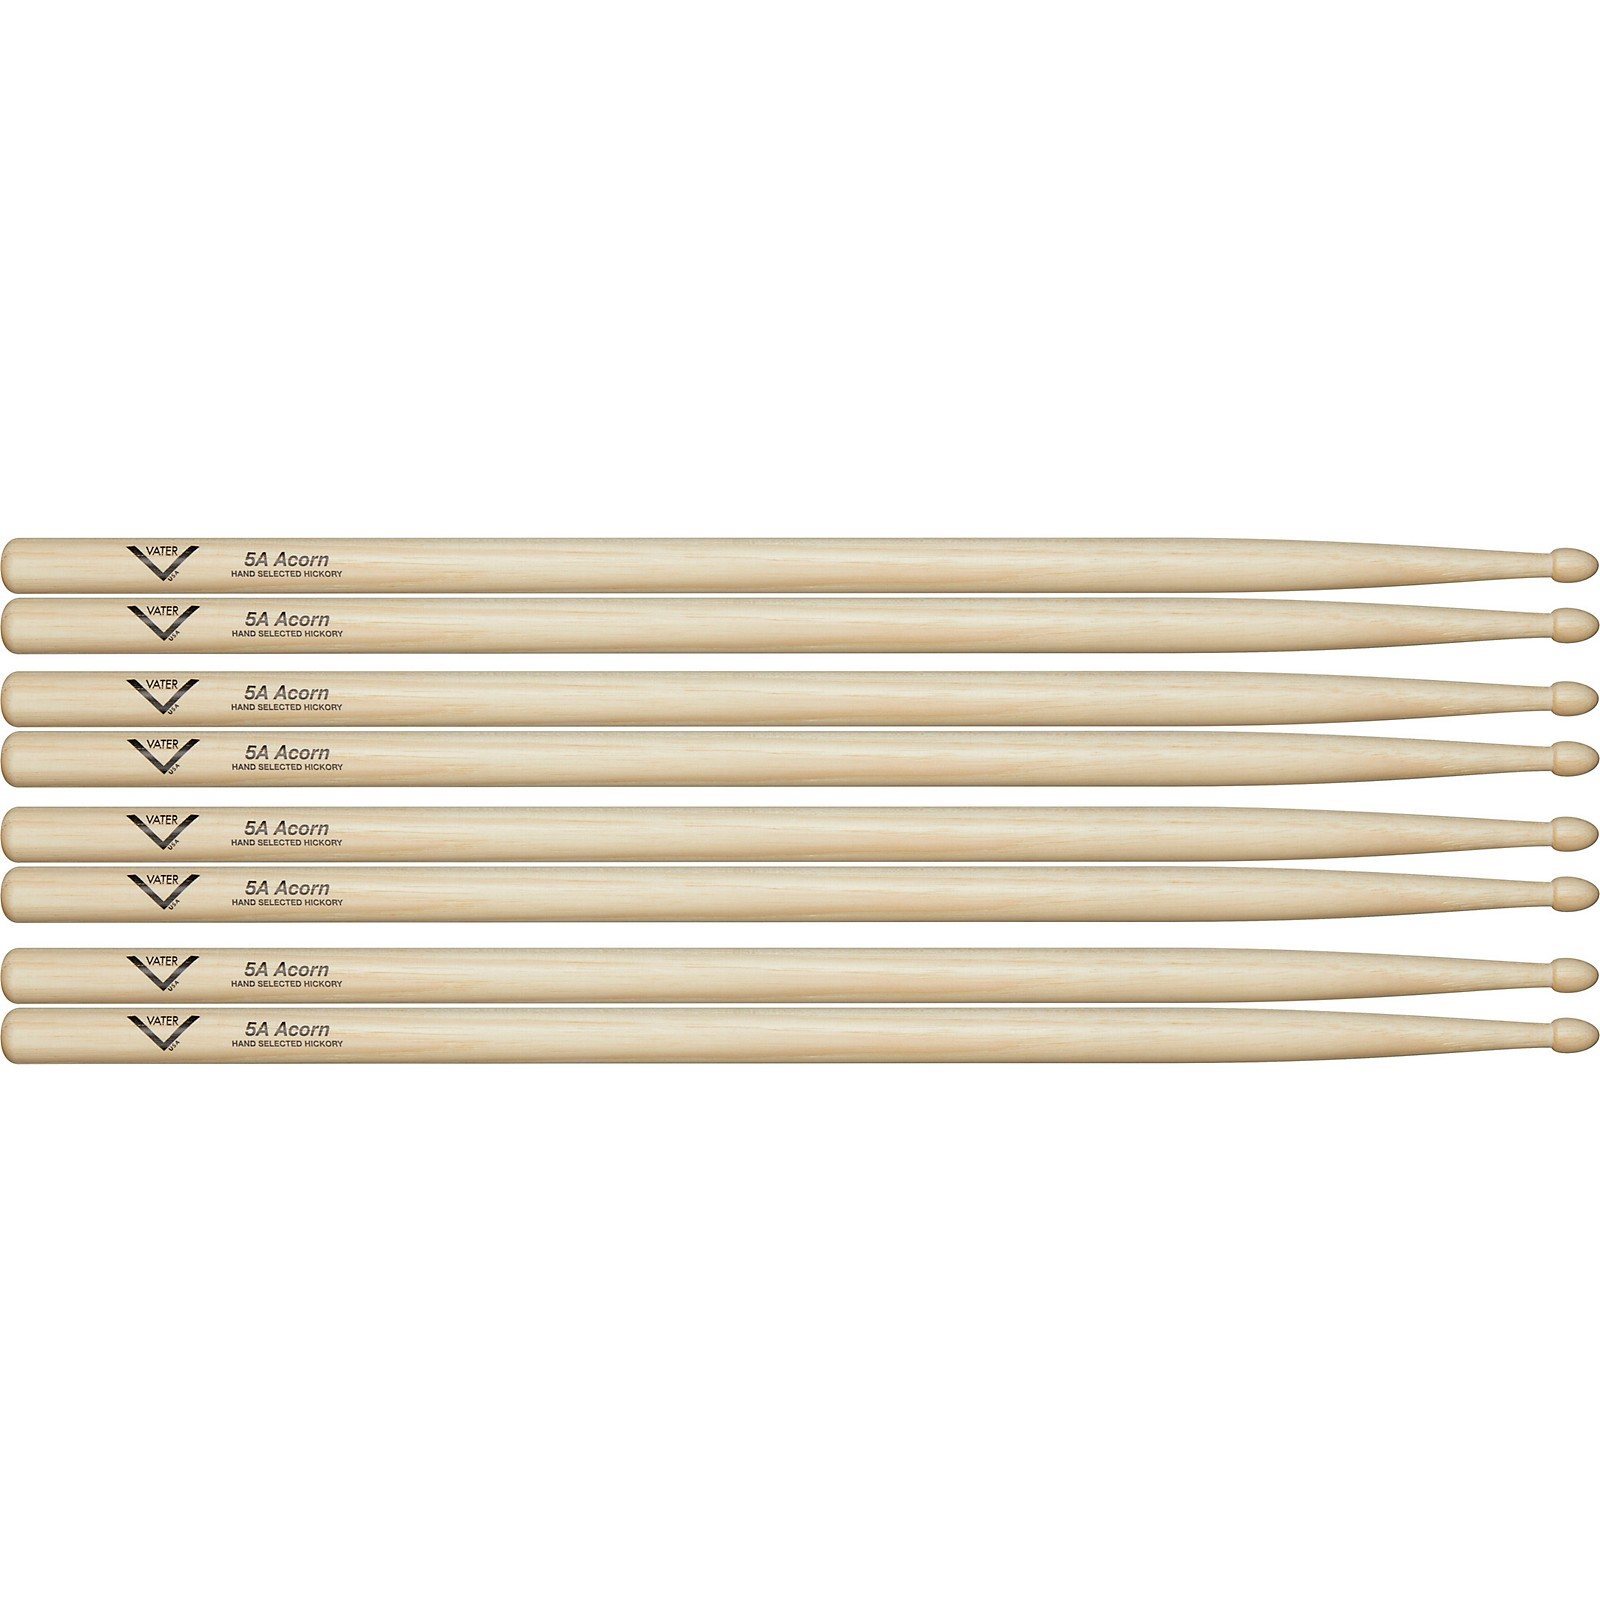 Vater 5A Acorn - Buy 3, Get 1 Free Value Pack